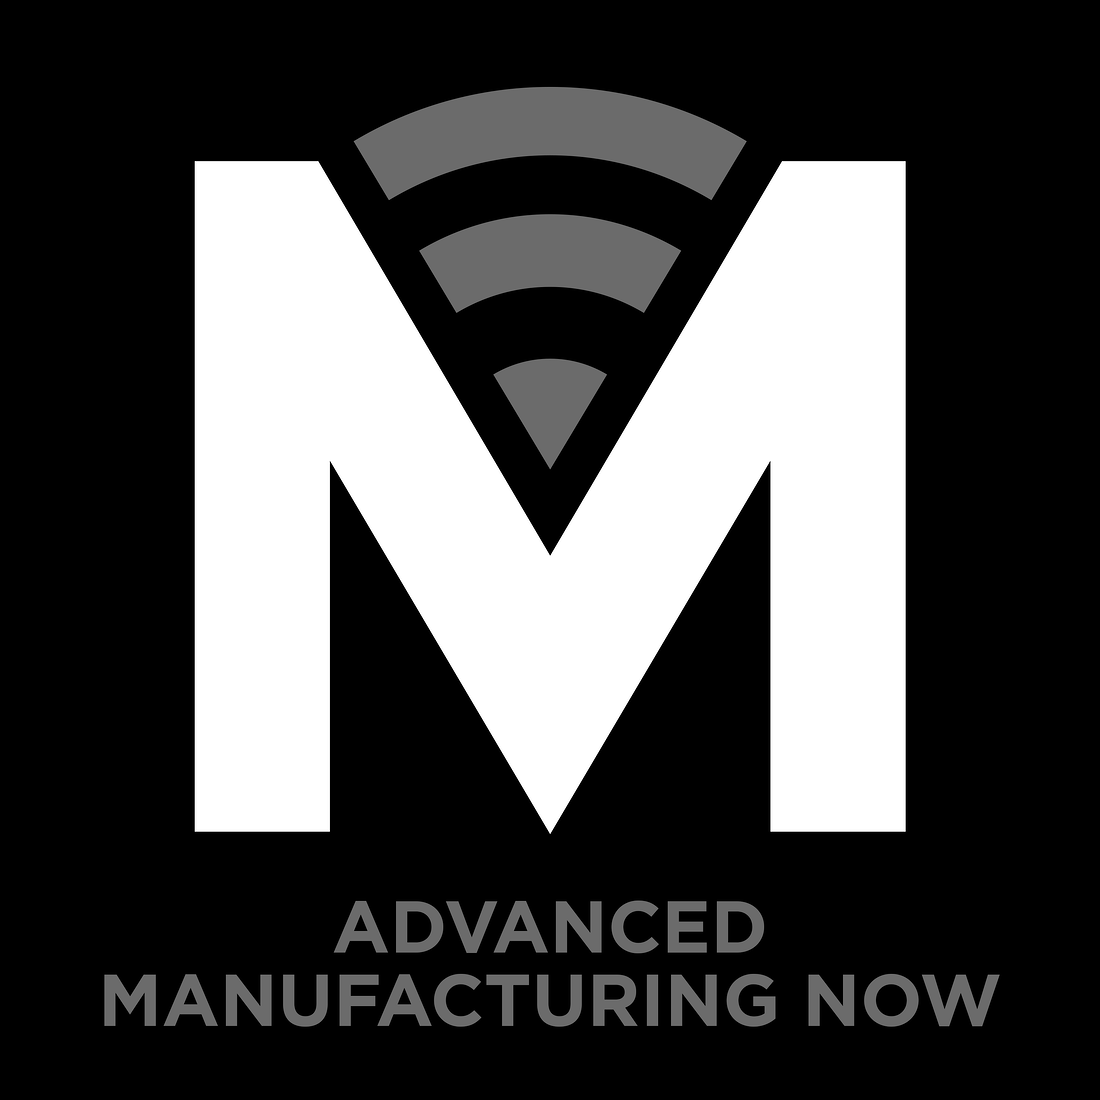 advanced manufacturing logo gray